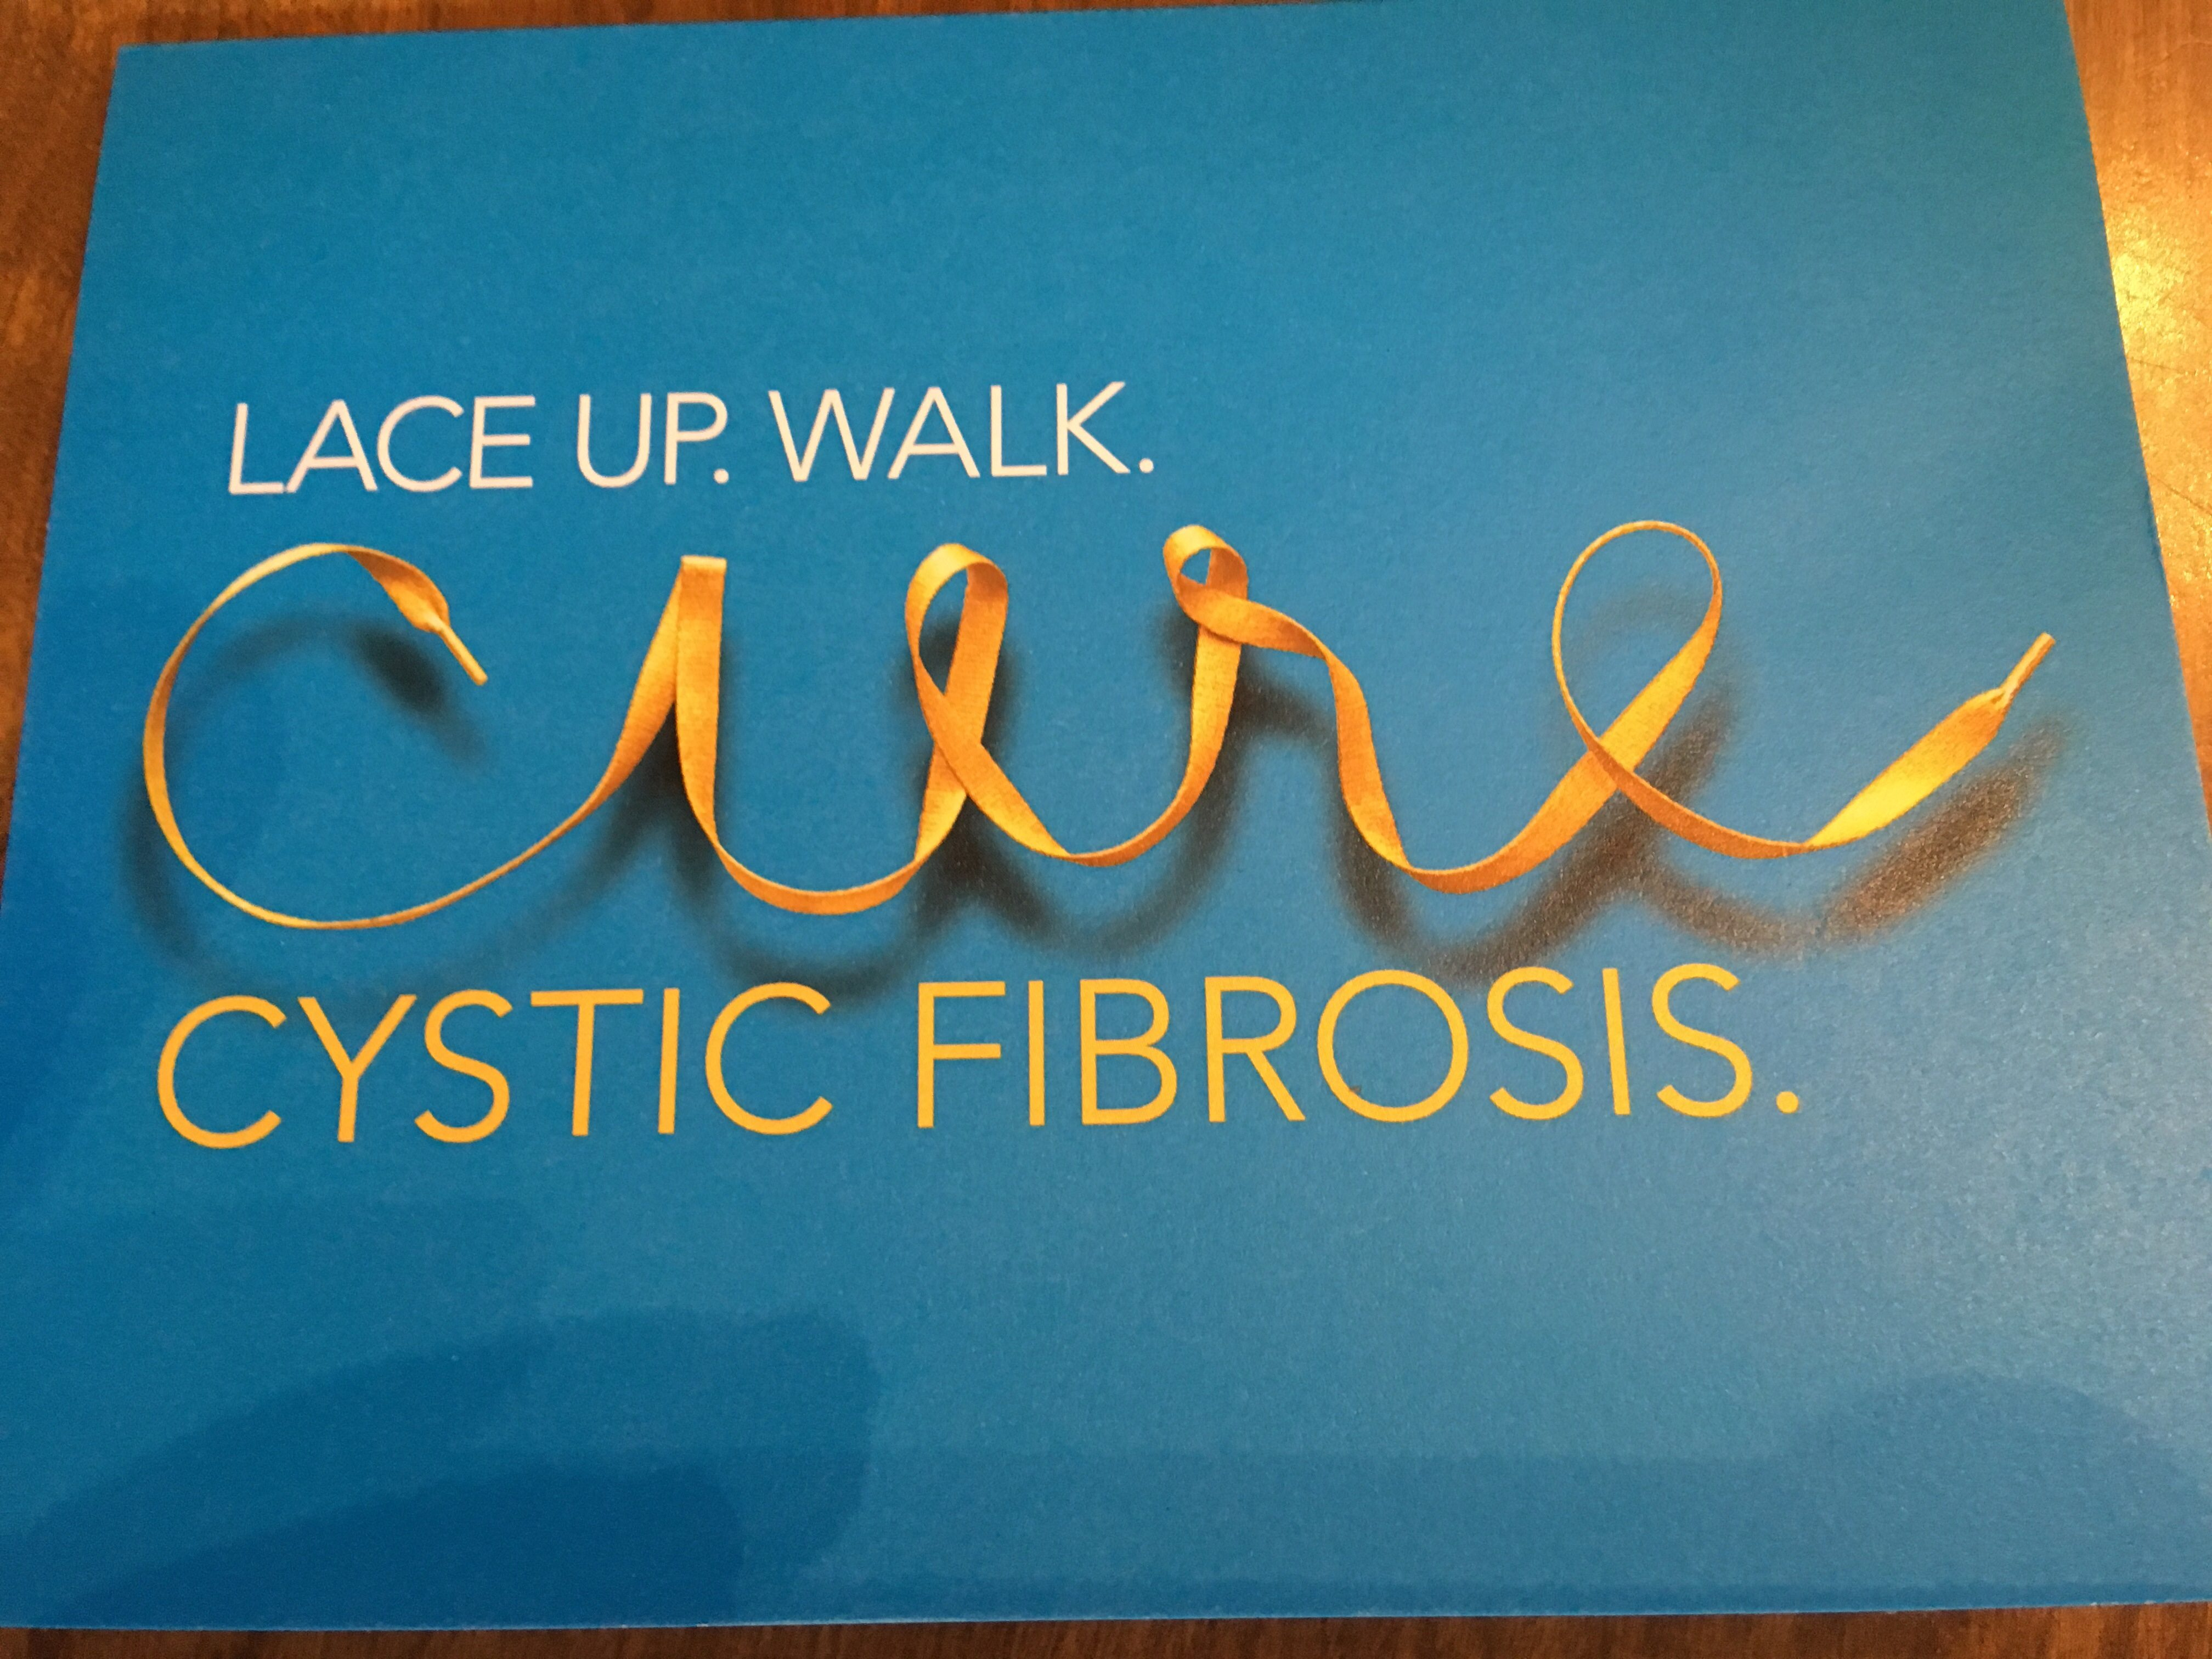 Lace up. Walk. Cure Cystic Fibrosis